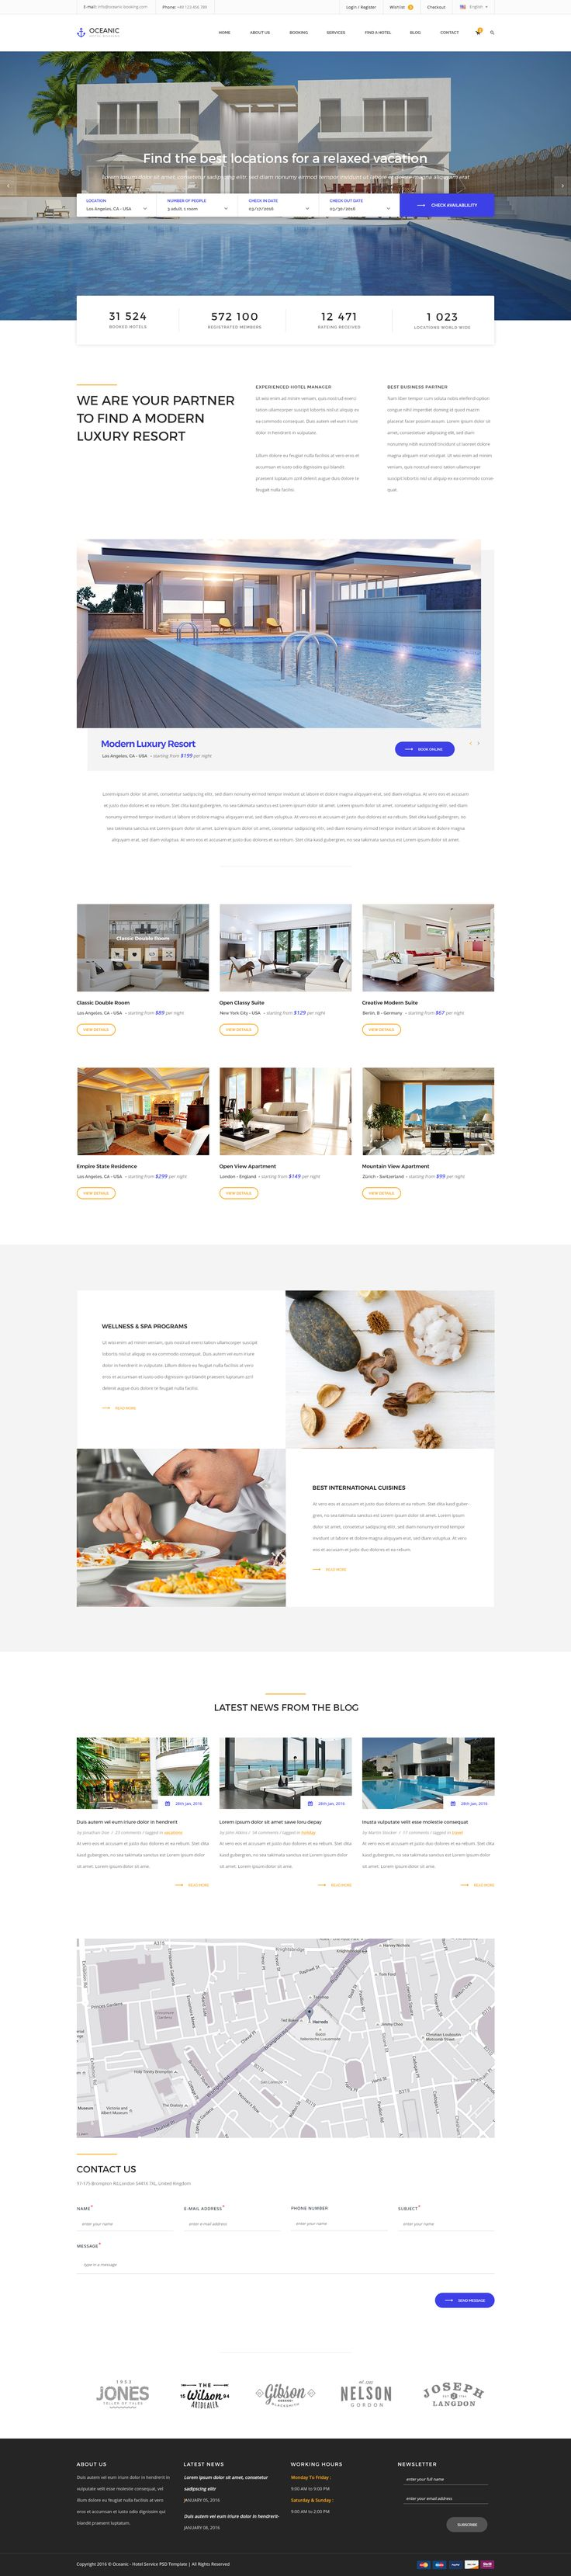 wedding invitation template themeforest%0A Oceanic  Hotel Booking PSD template